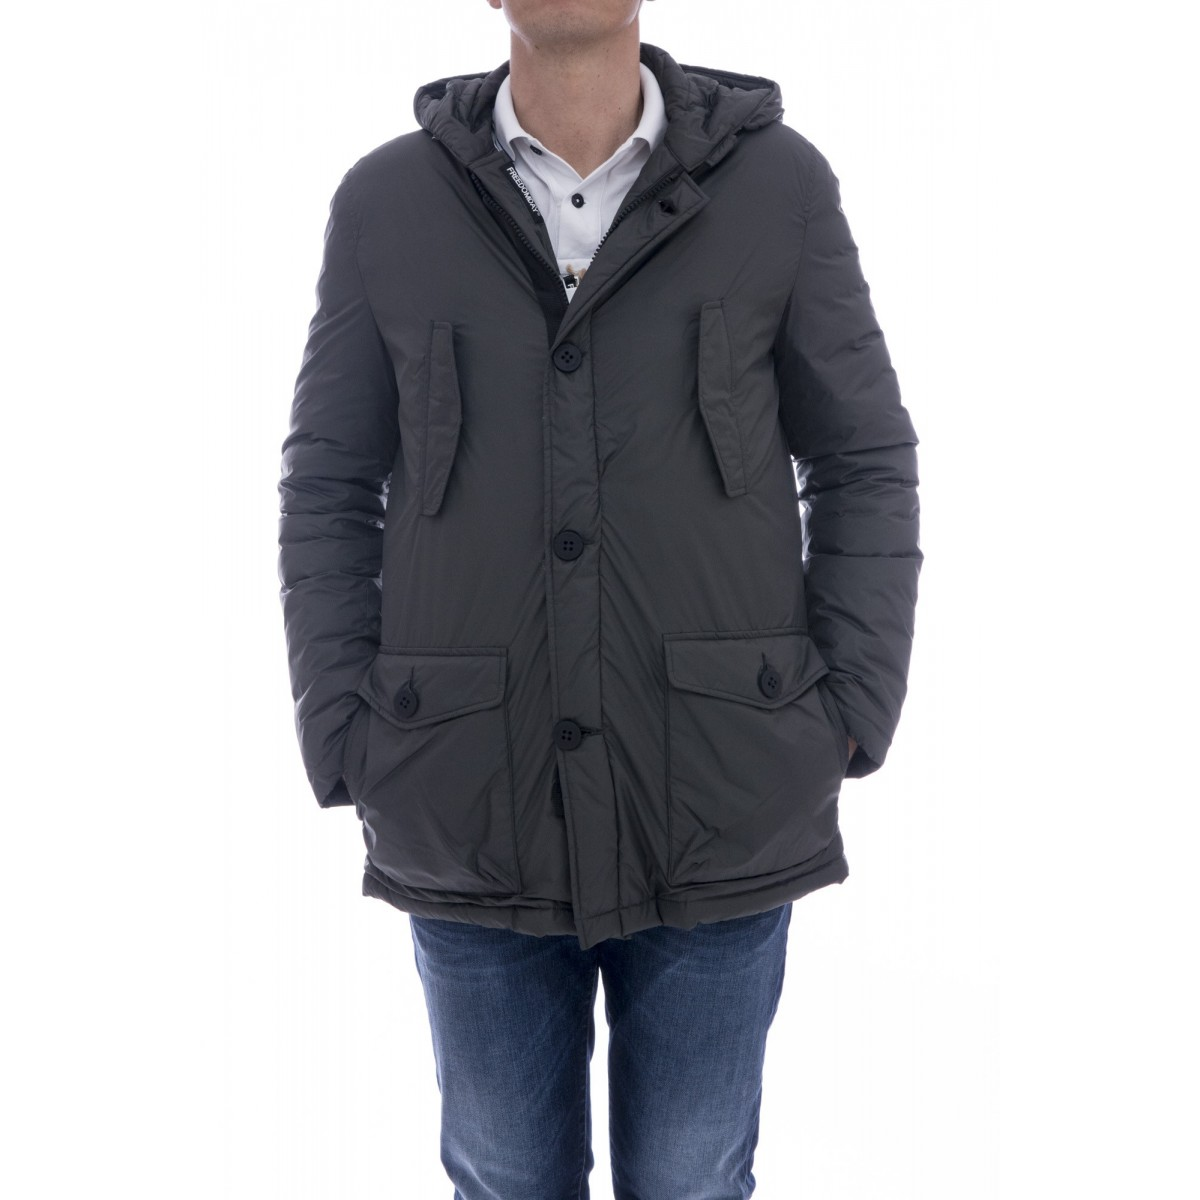 Piumino Freedomday - Logan ifrm5030n-702-rd light parka 150gr